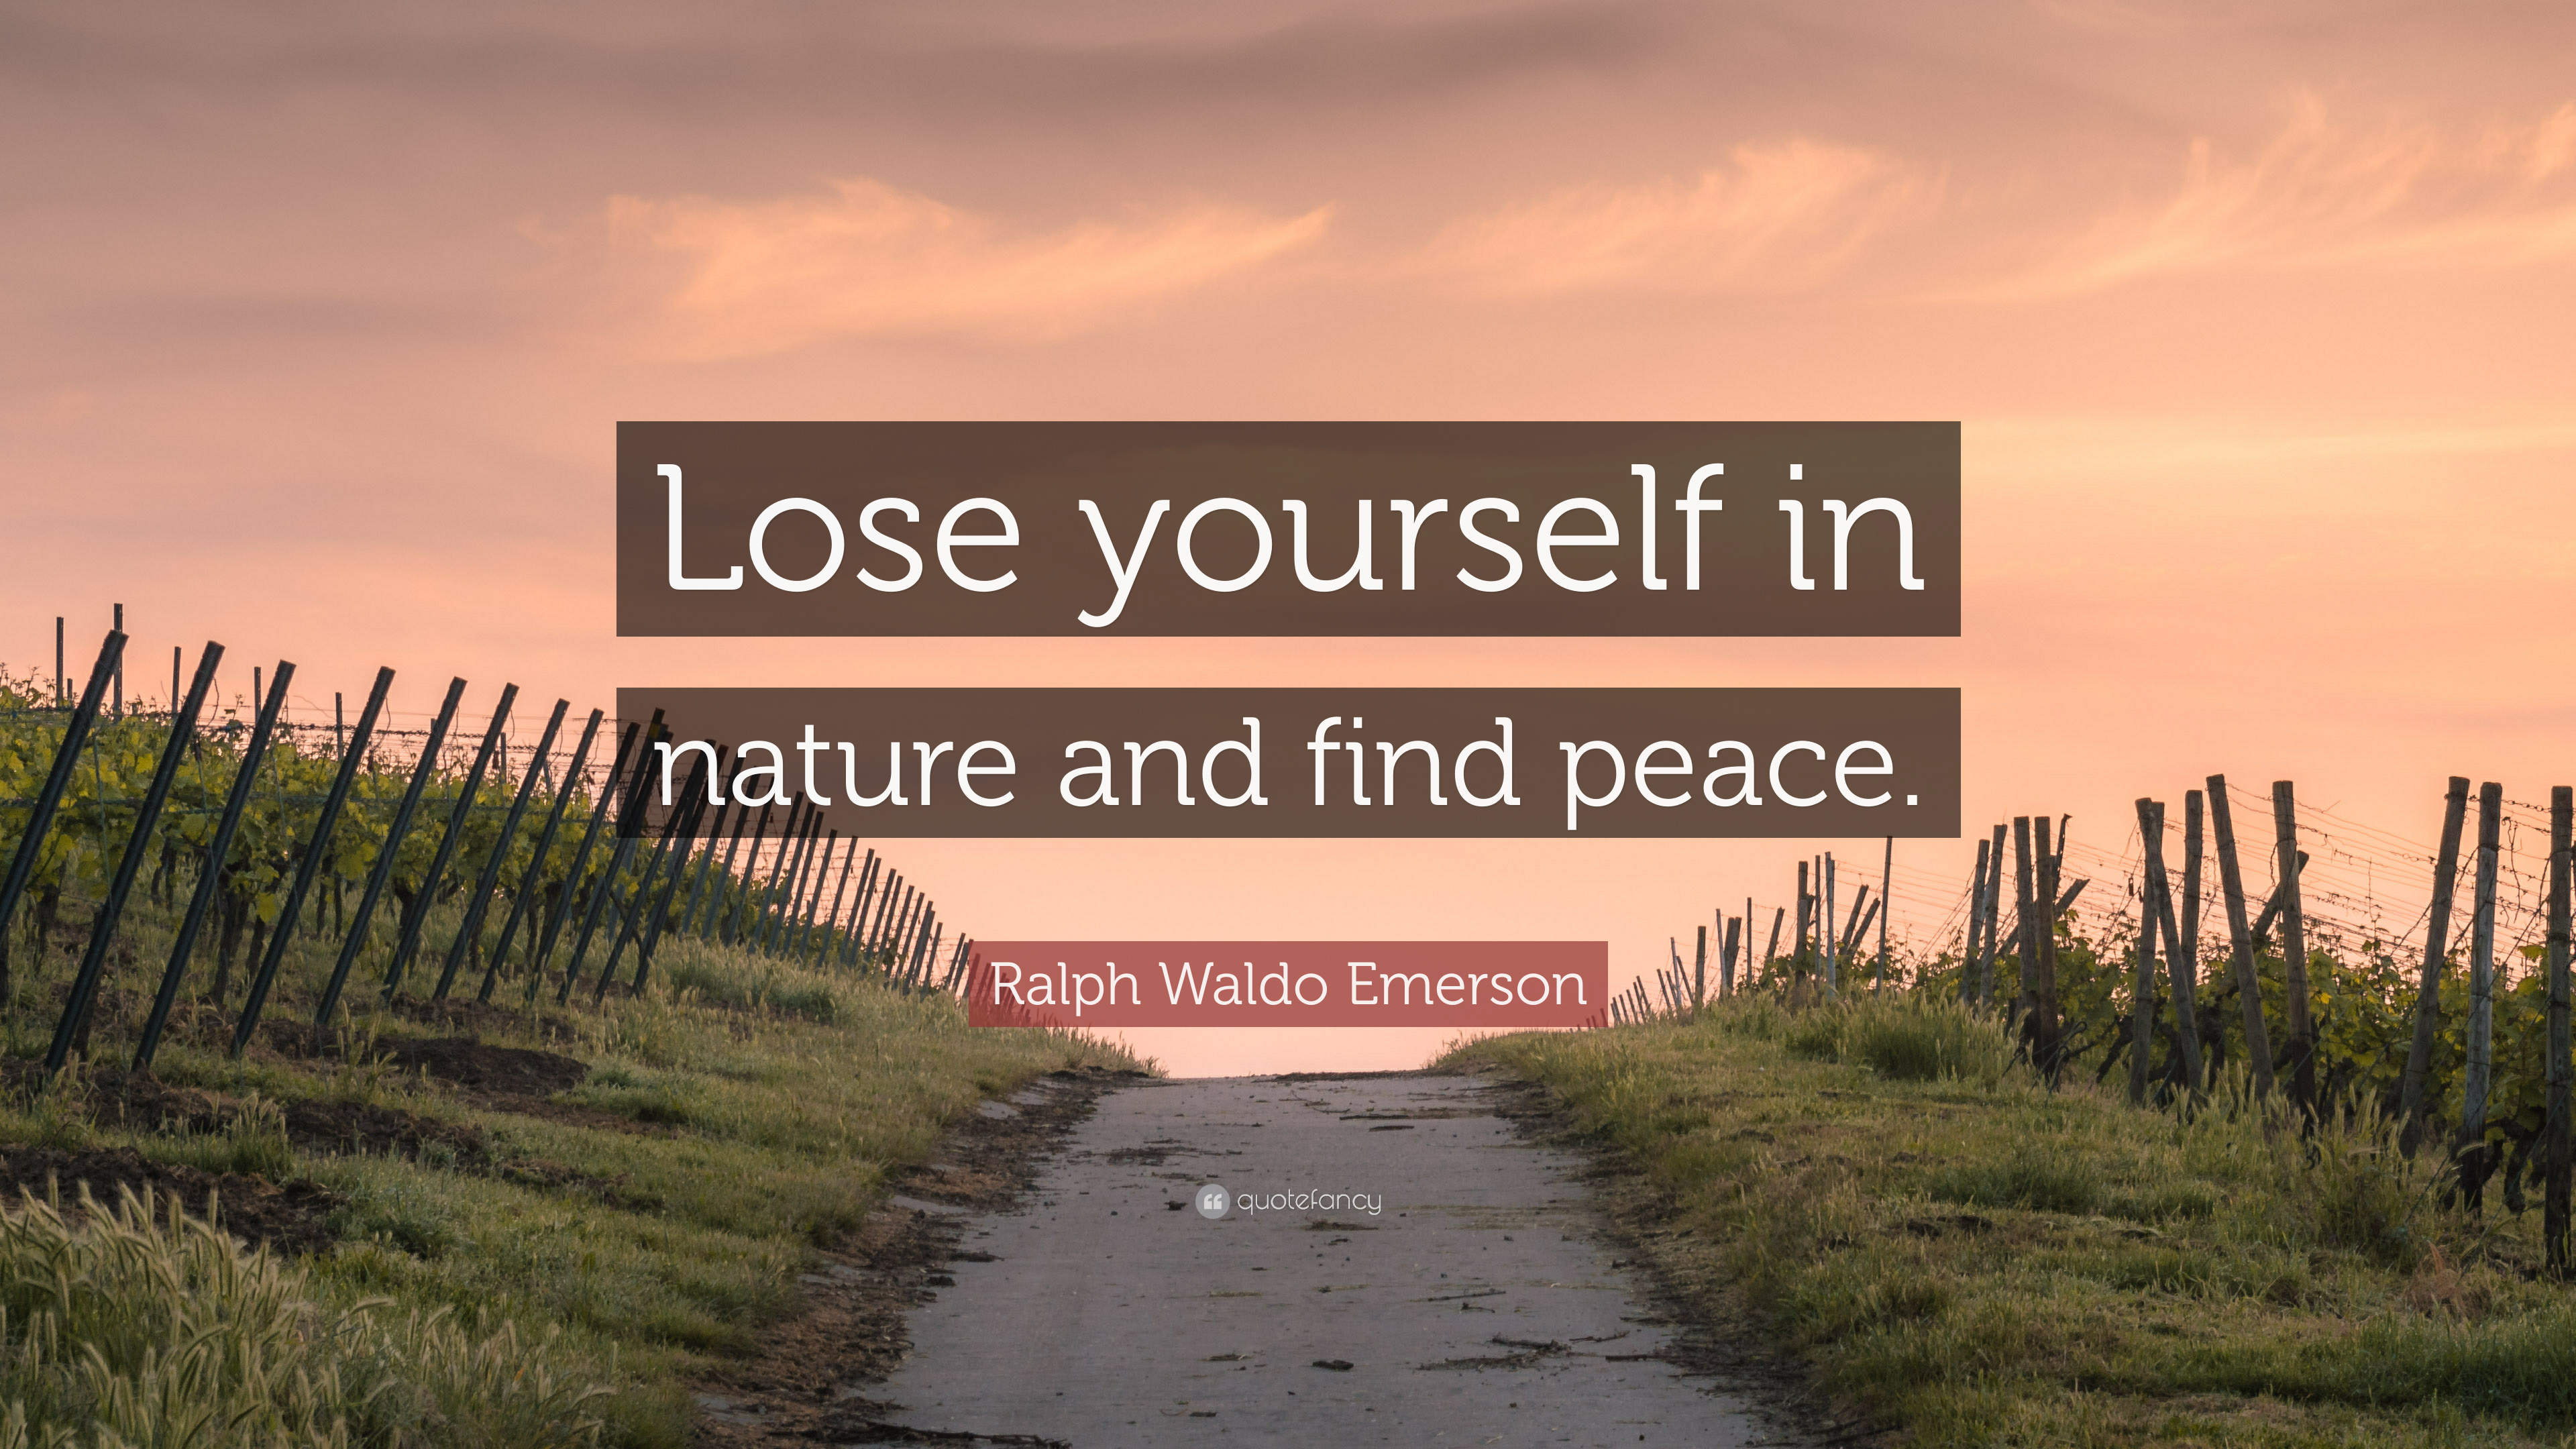 Ralph Waldo Emerson Quote Lose Yourself In Nature And Find Peace